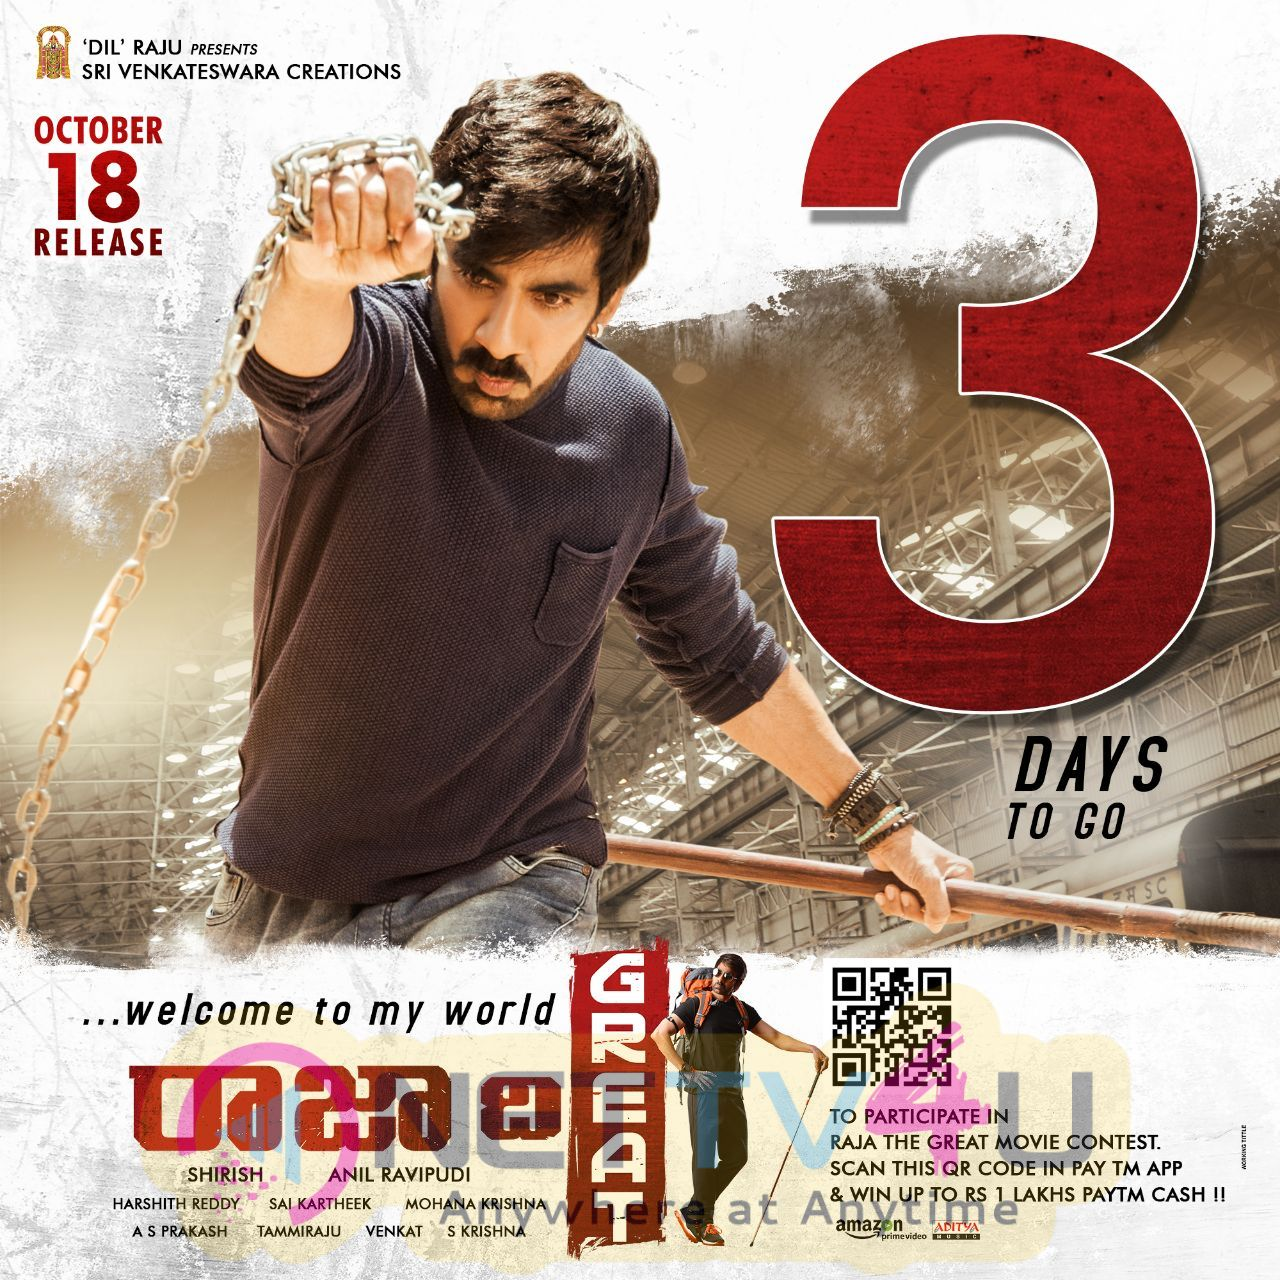 Raja The Great Movie 3 Days To Go Poster